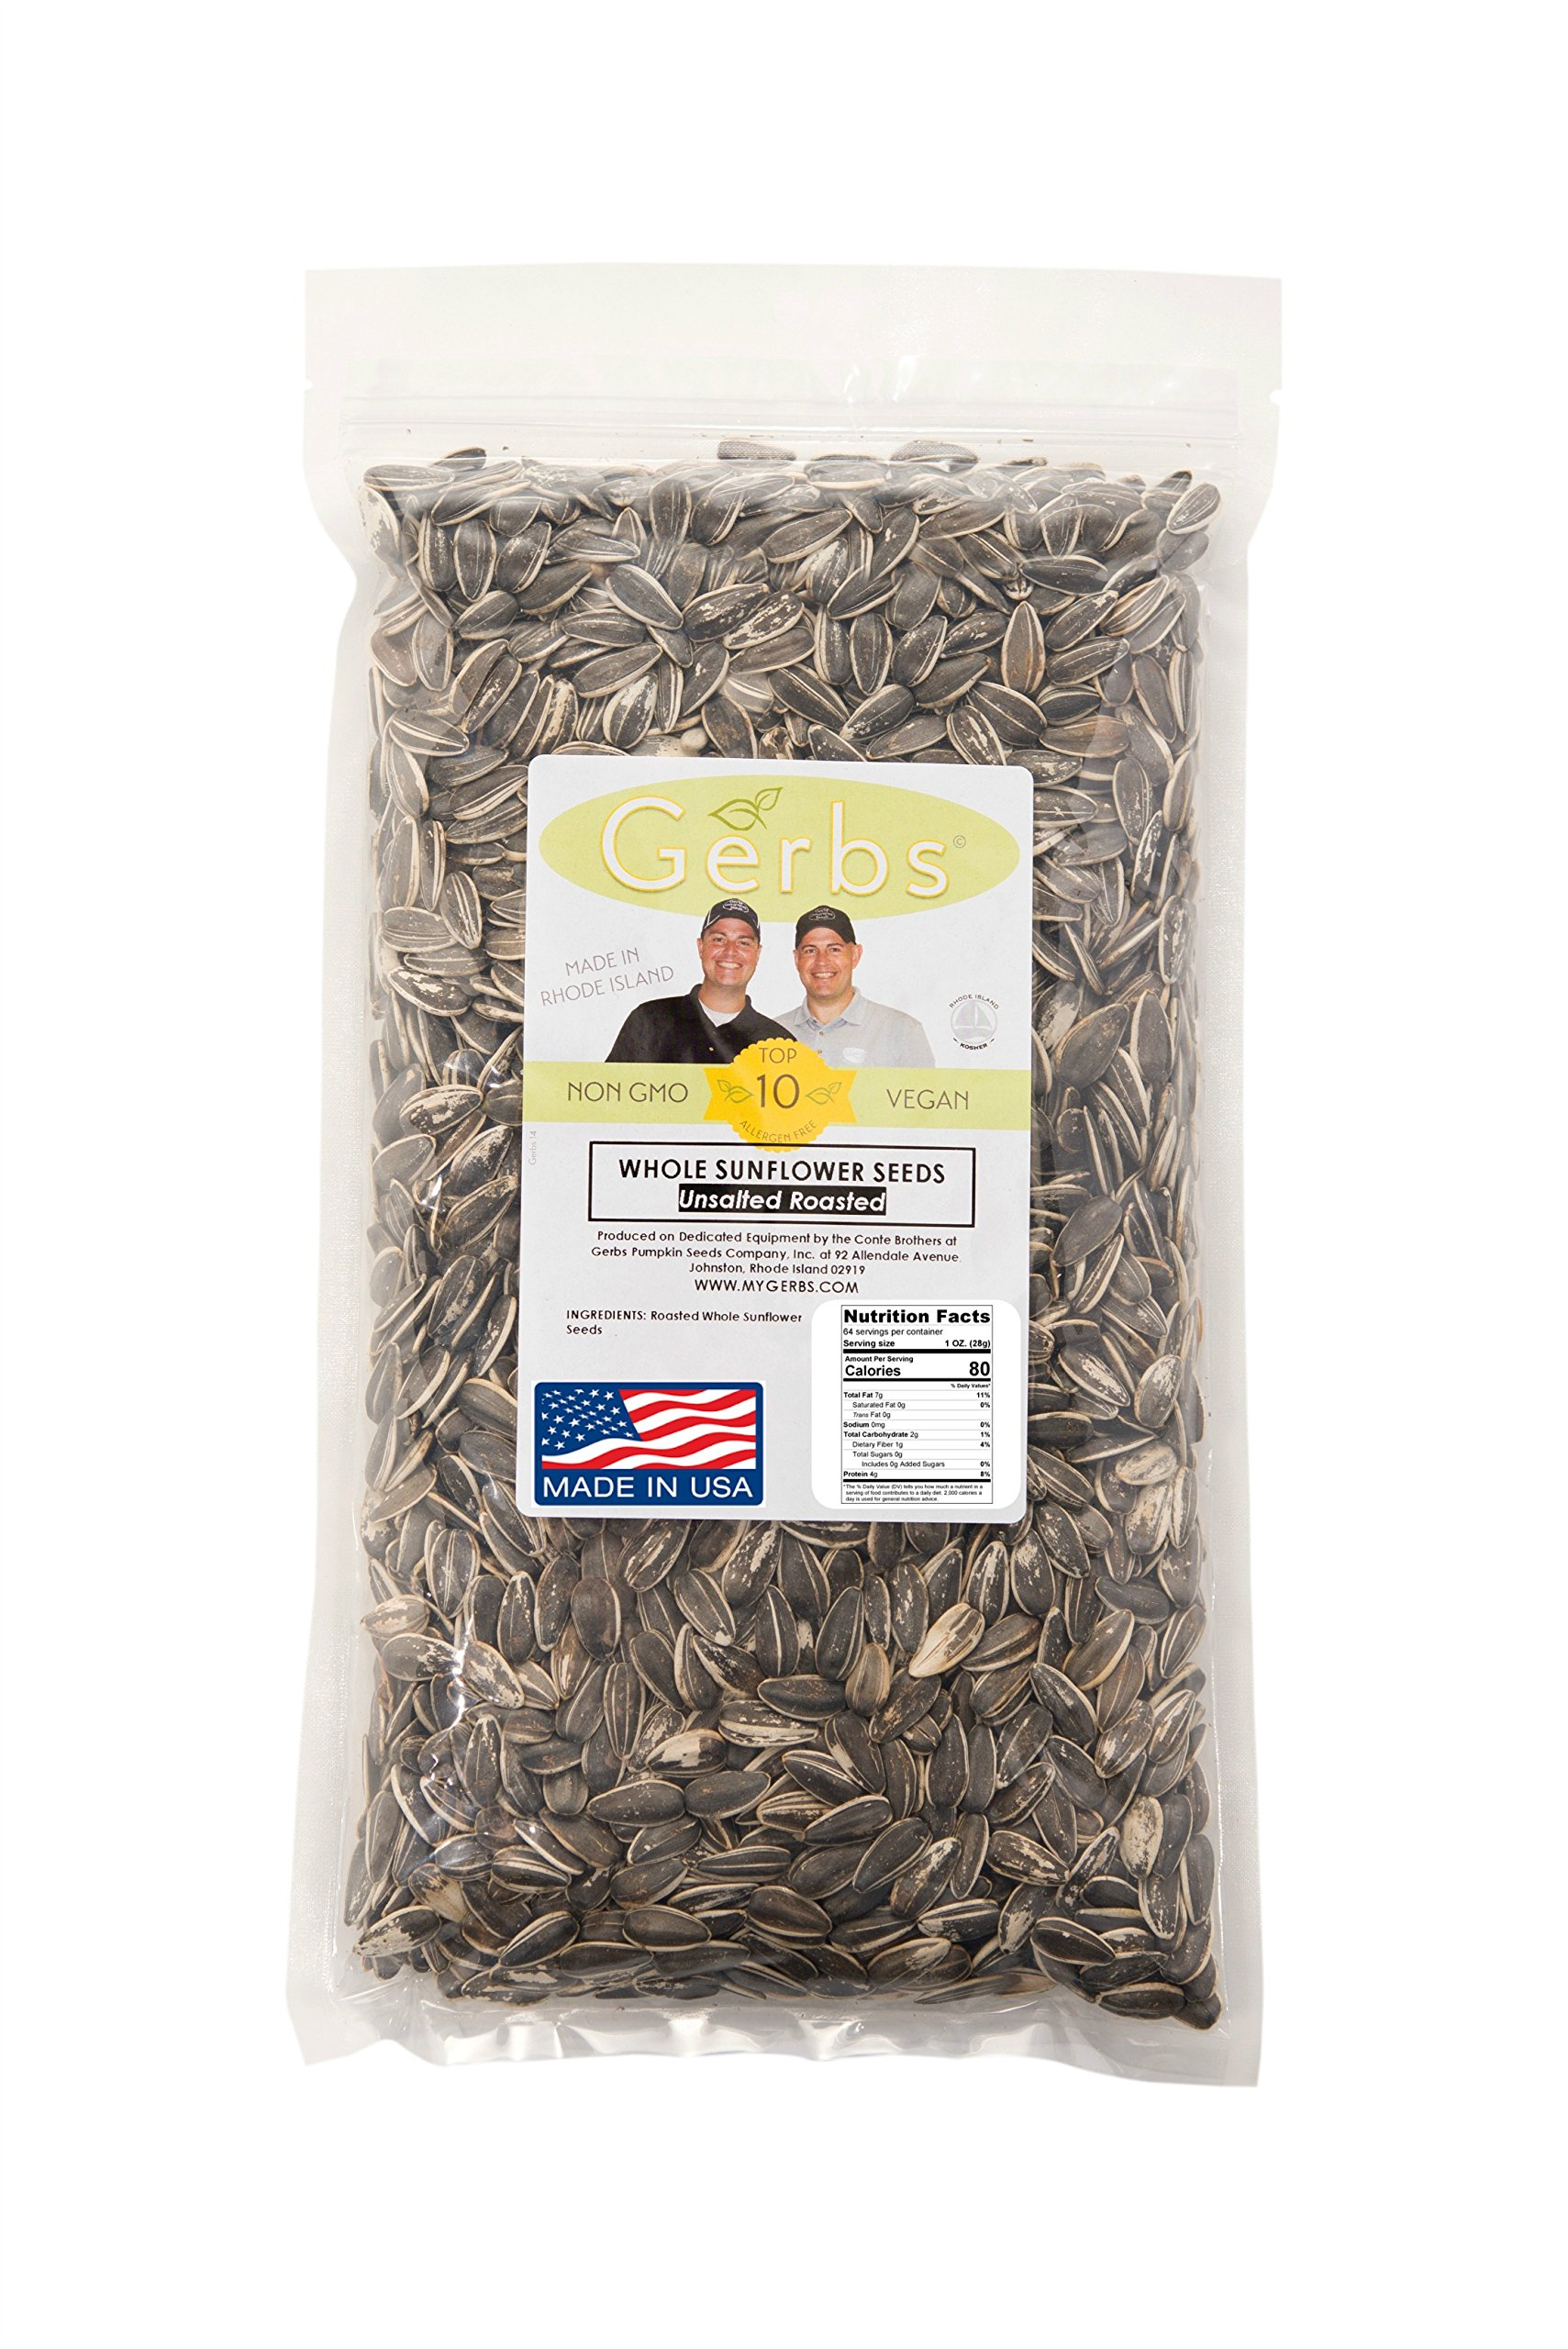 Unsalted Whole Sunflower Seeds by Gerbs – 4 LBS - Top 12 Food Allergy Free & NON GMO - Vegan & Kosher - In-Shell Dry Roasted Seeds Grown in USA